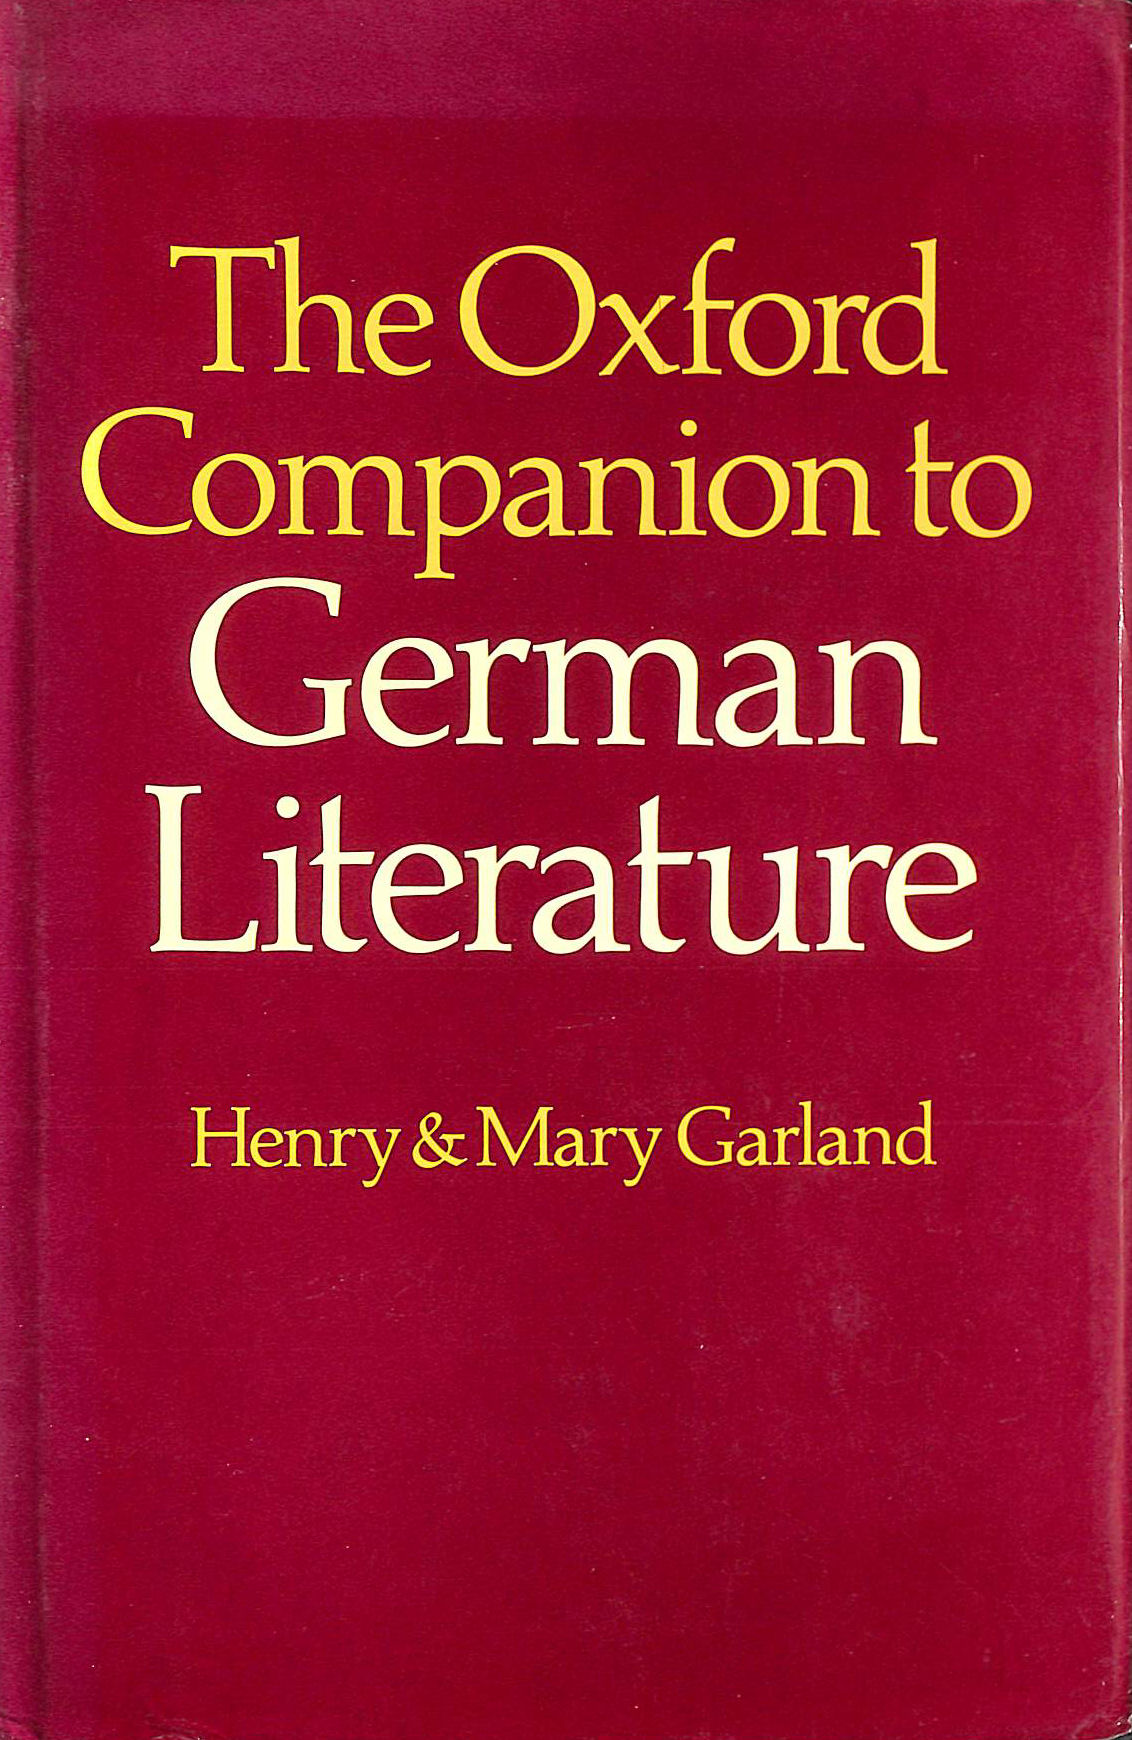 Image for Oxford Companion to German Literature